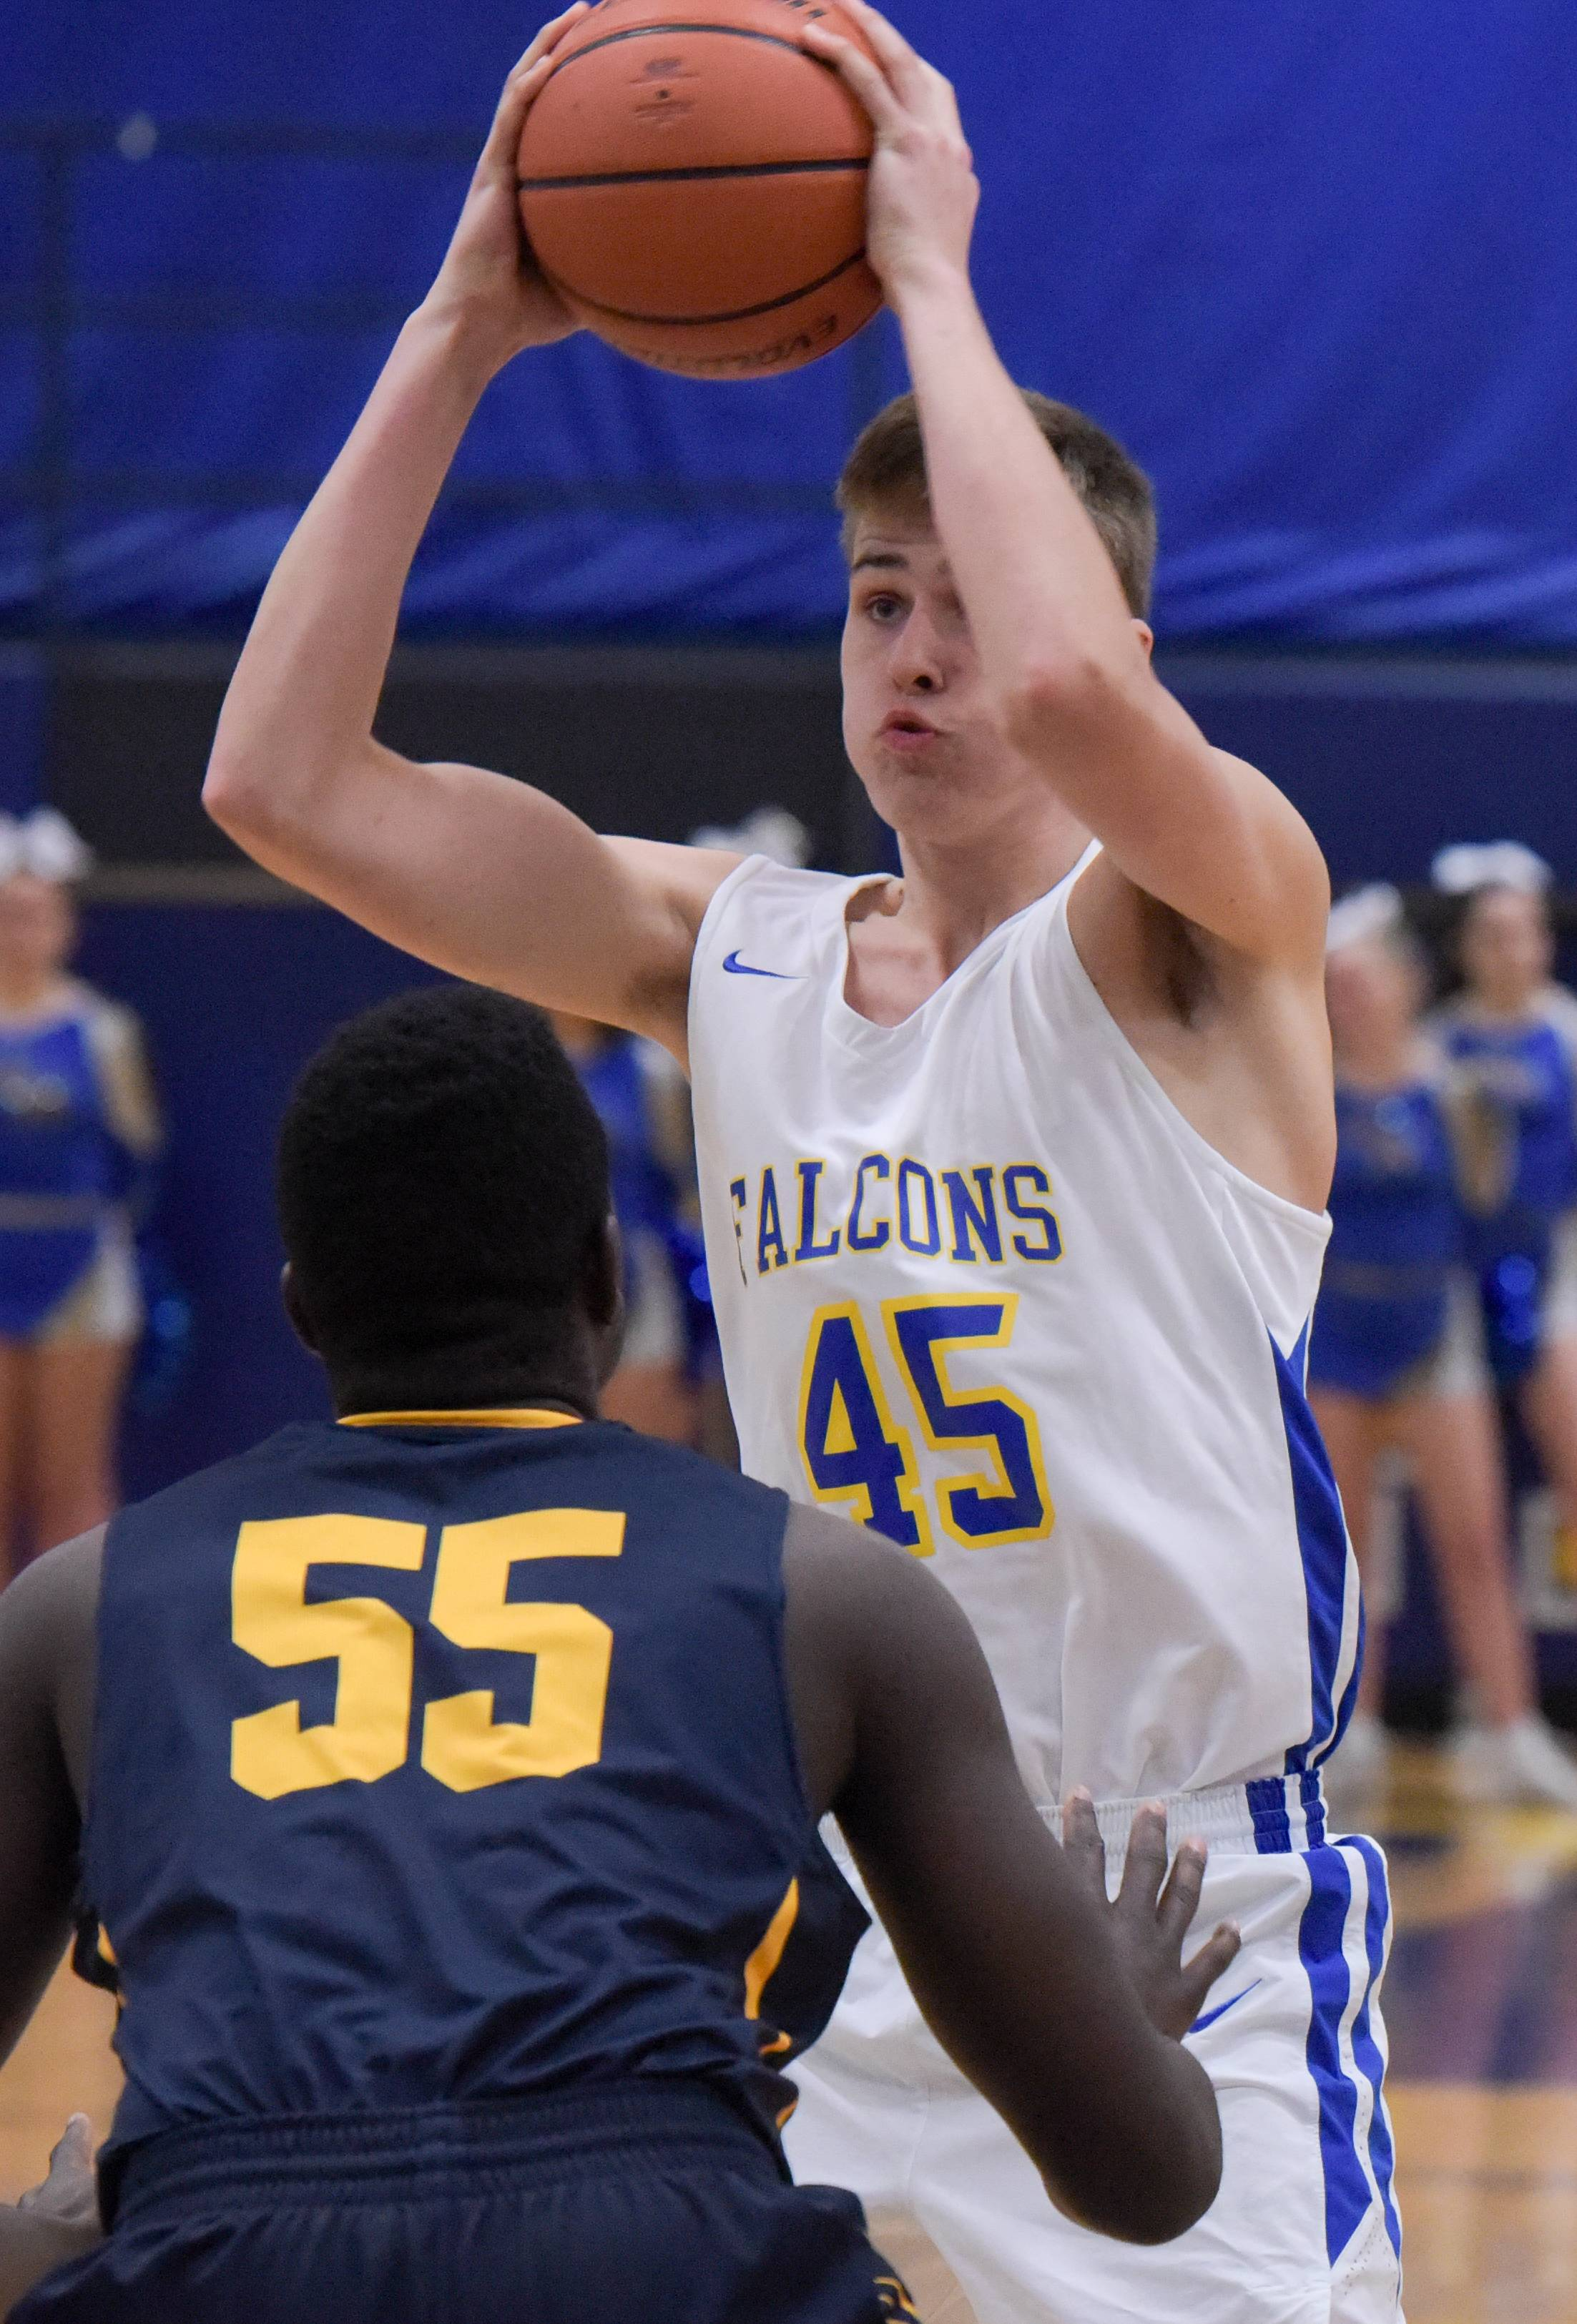 Wheaton North's Josh Sorenson (45) plays against Neuqua Valley on Dec. 12, 2017 in Wheaton.